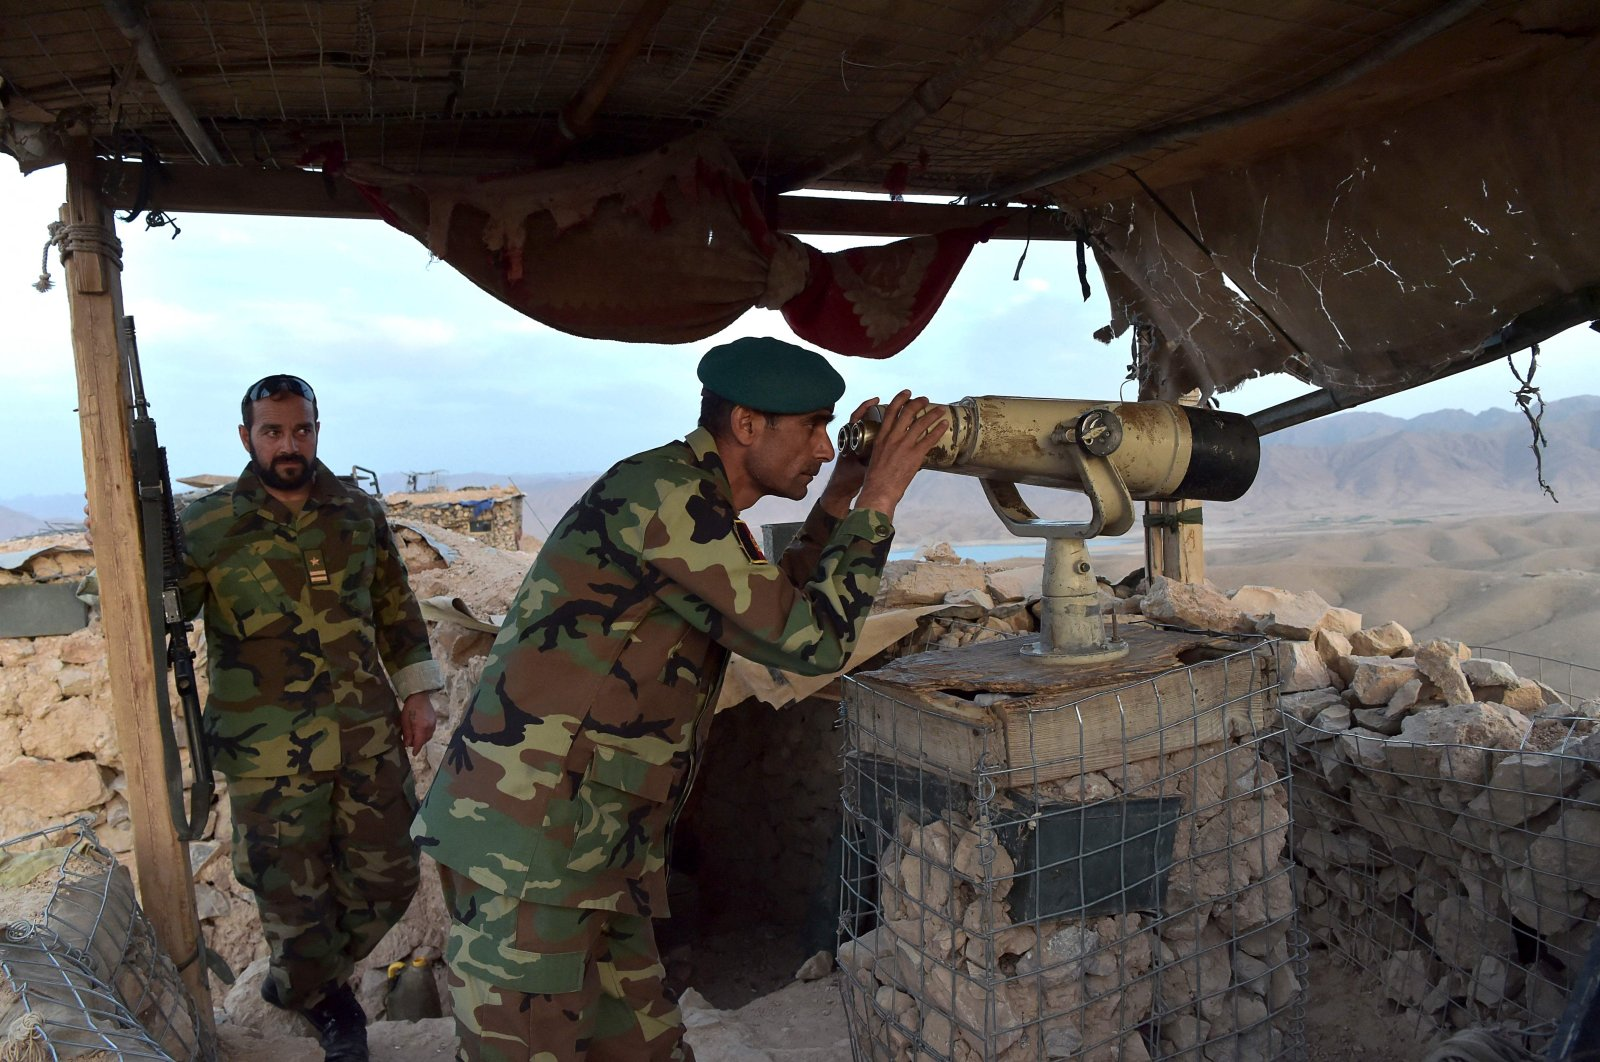 Afghan National Army (ANA) commander Dost Nazar Andarabi keeps watch with binoculars at an outpost set up against Taliban fighters in Kajaki, northeast of Helmand Province, Afghanistan, March 23, 2021. (AFP Photo)